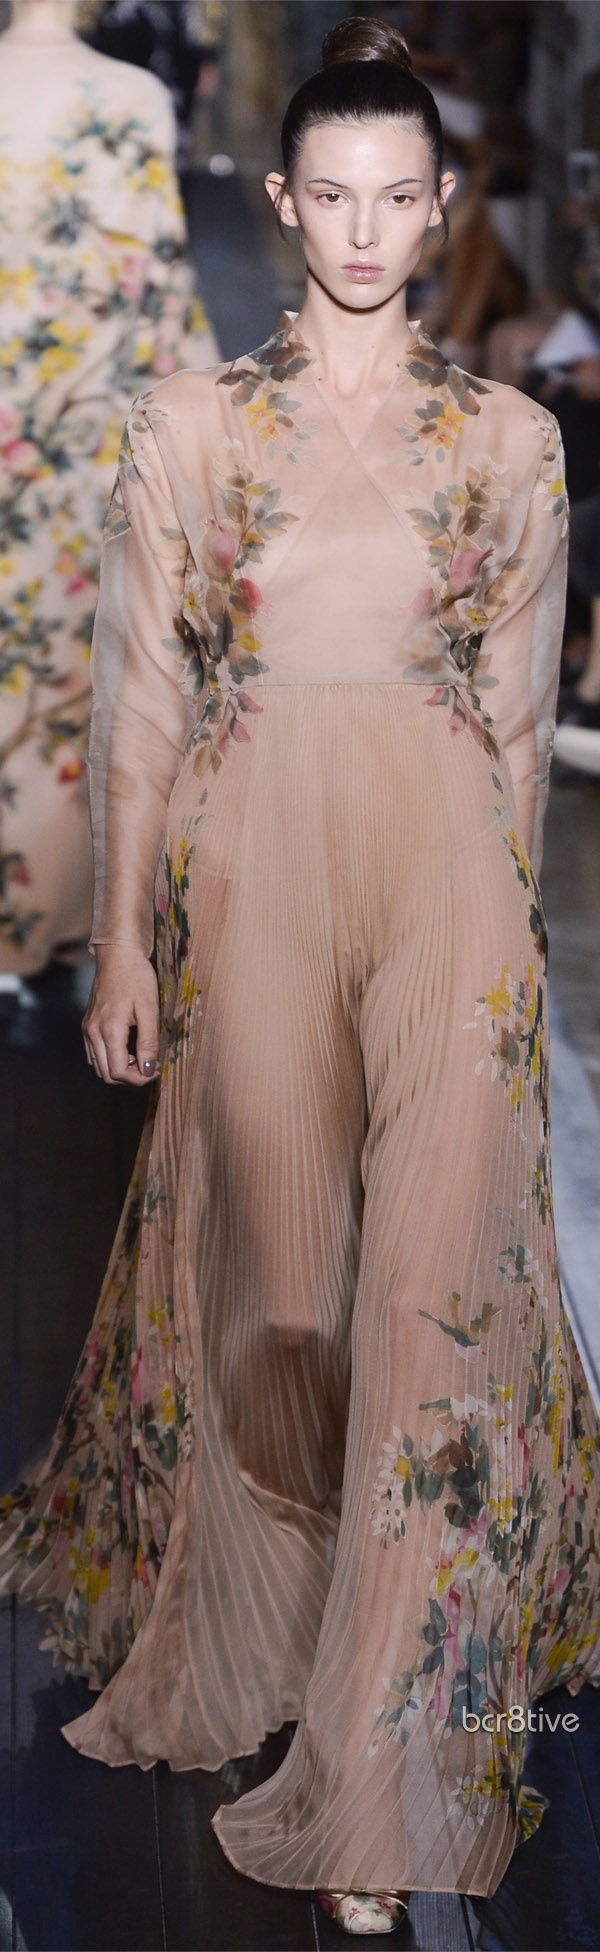 Valentino Haute Couture Fall Winter 2012-13 Collection